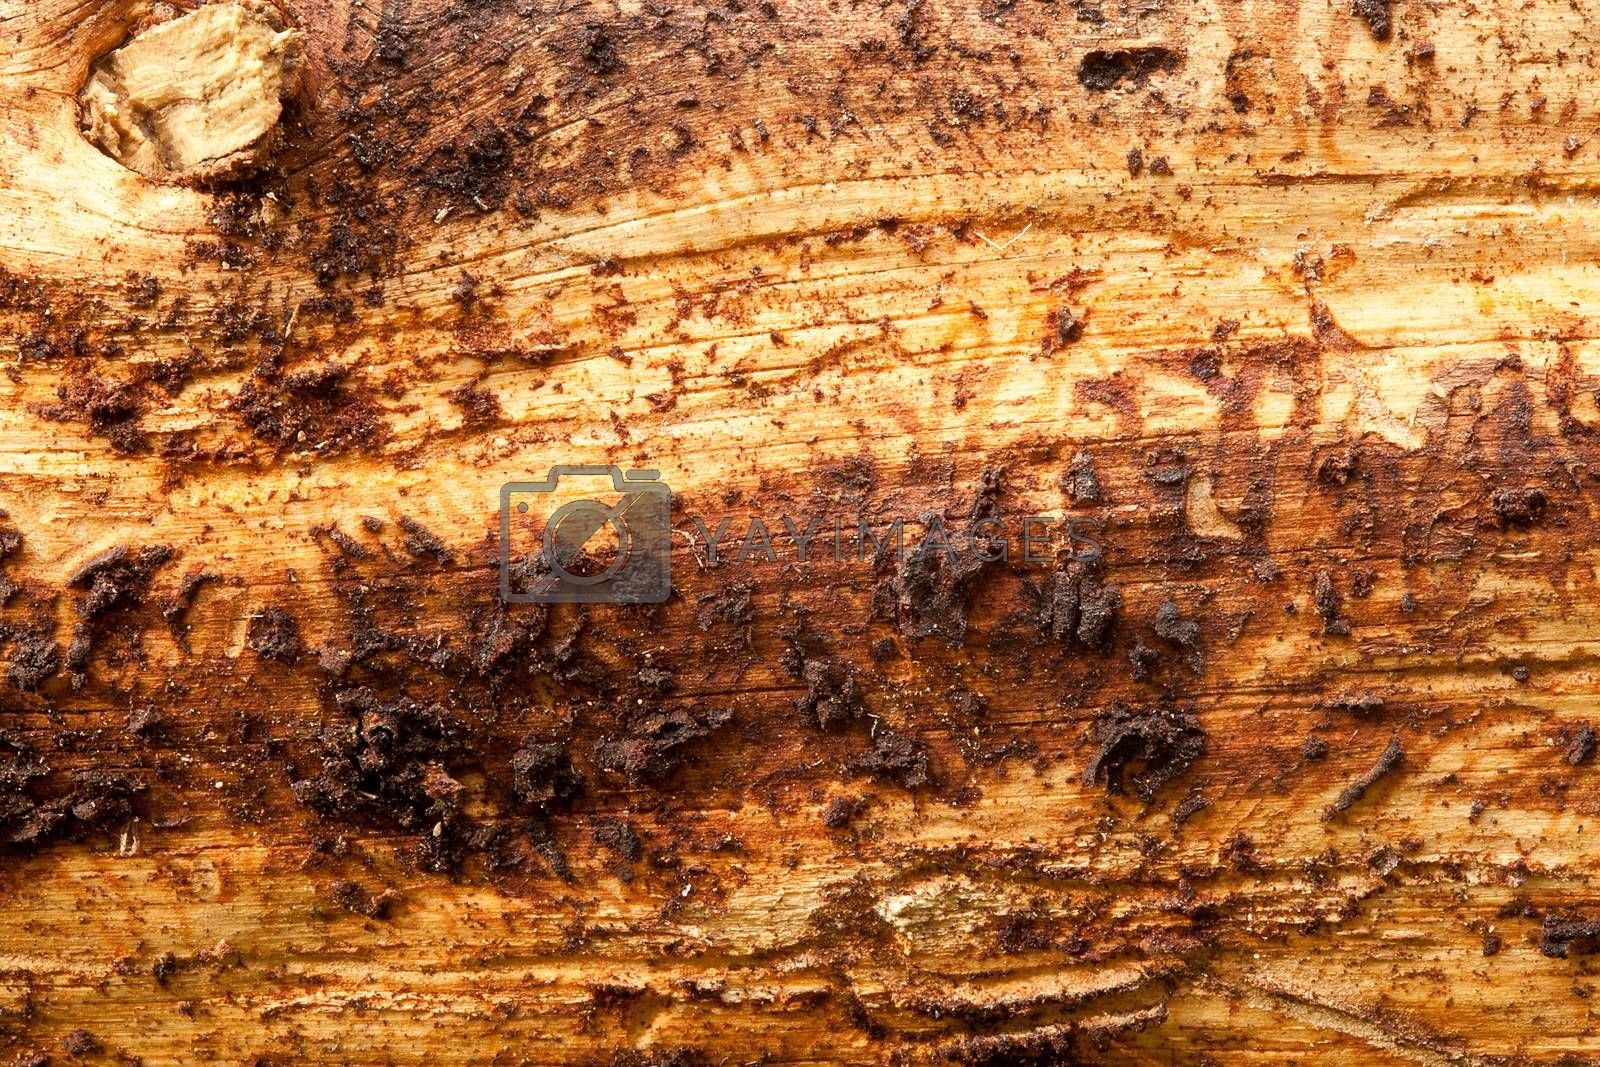 Close up of a rough tree trunk